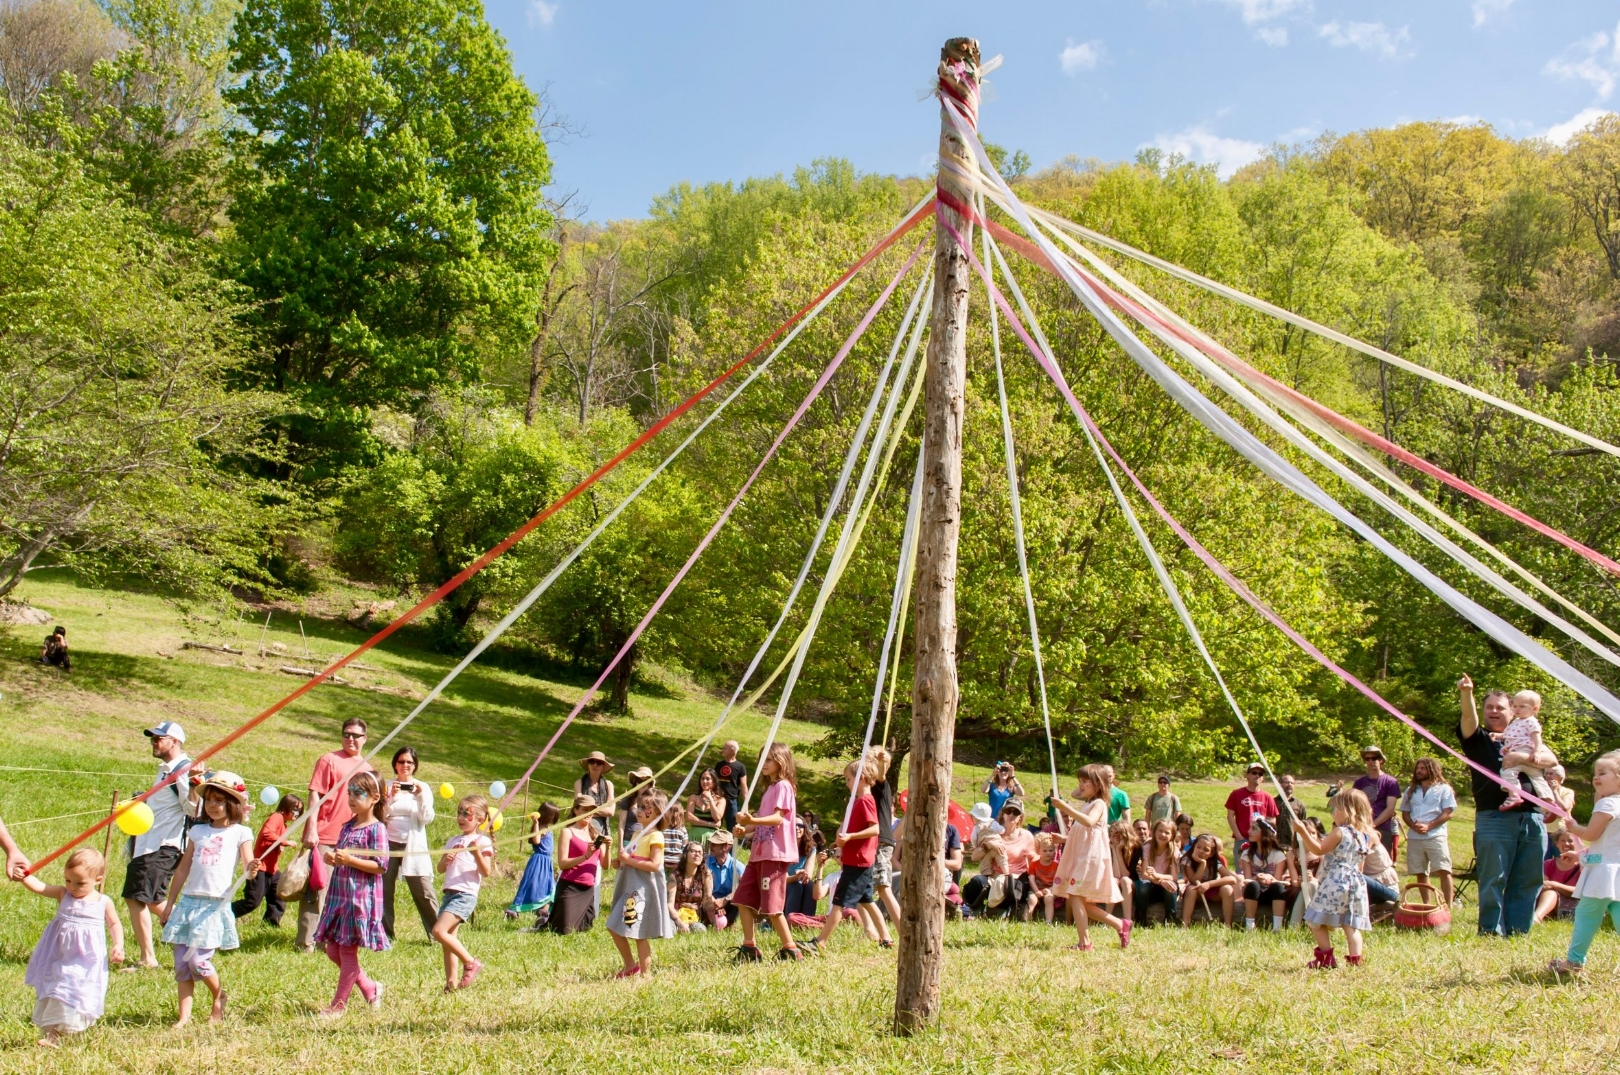 Festivals enrich our sense of community and celebrate seasonal rhythms